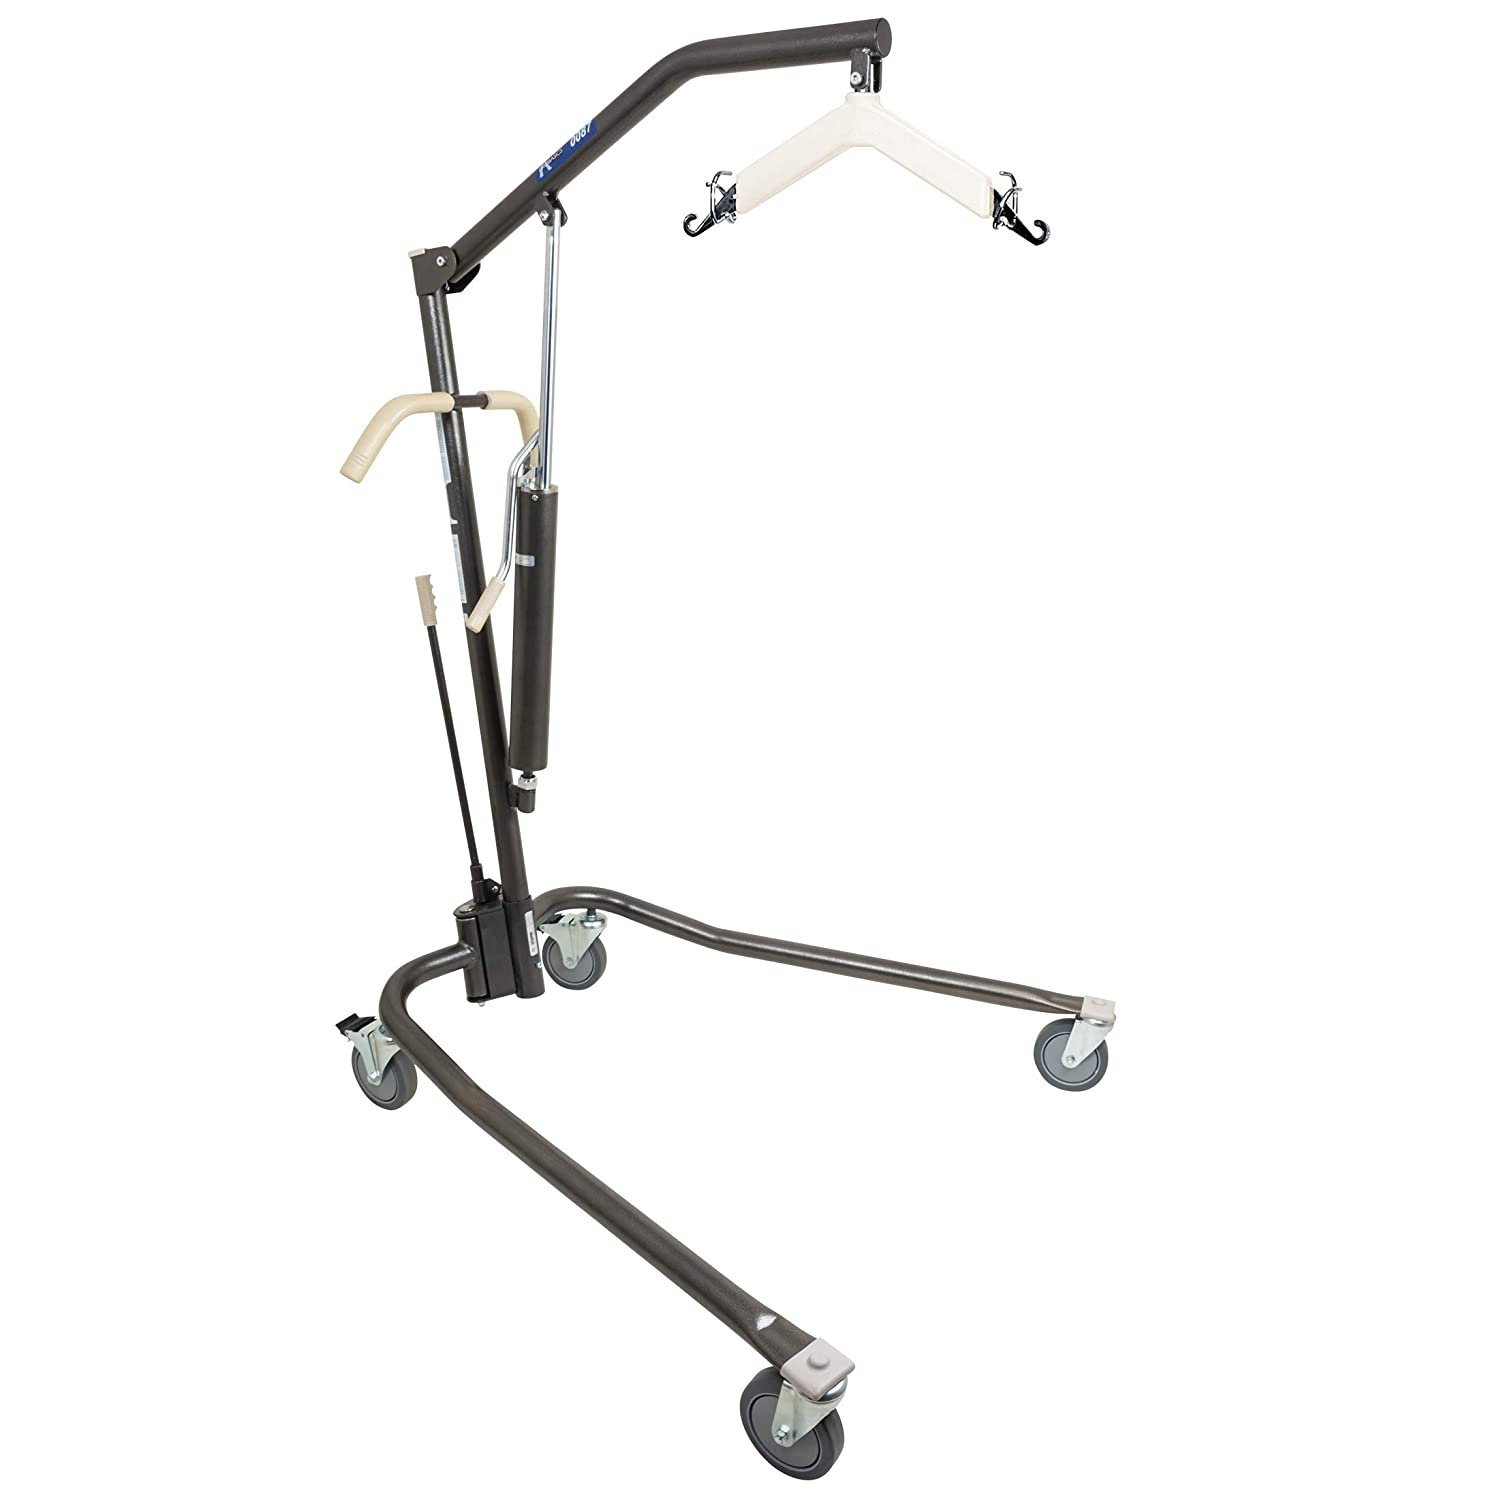 ProBasics Patient Lift - Hydraulic Patient Body Lift For In Home Use - Heavy Duty, Lifts Up to 450 lbs.